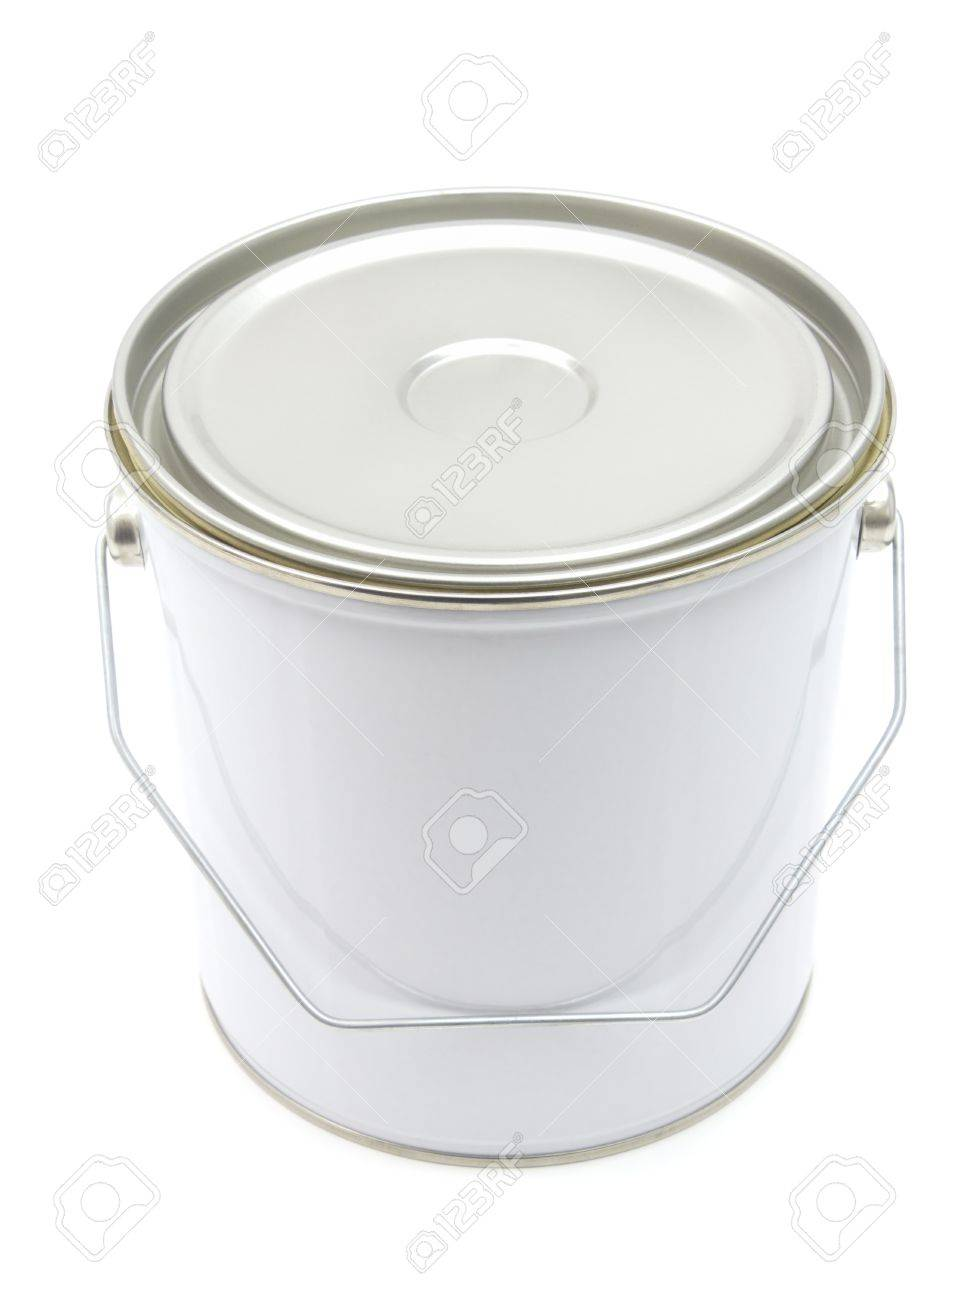 White paint can with handle isolated on a white background Stock Photo - 9830924